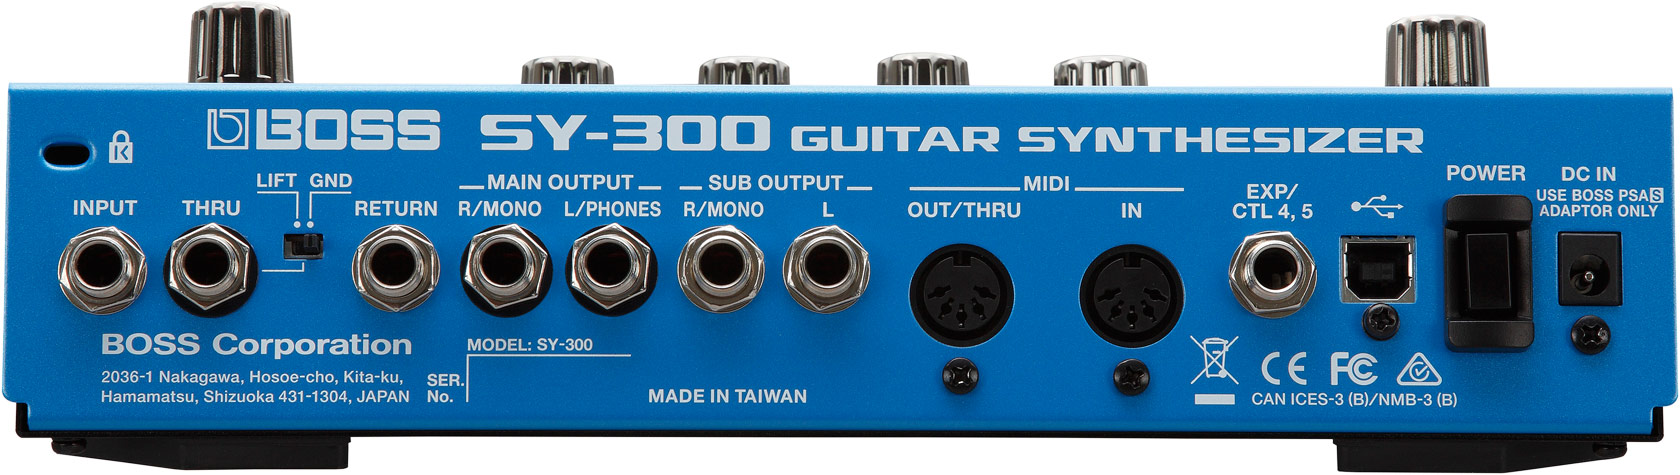 Boss Sy 300 Guitar Synthesizer